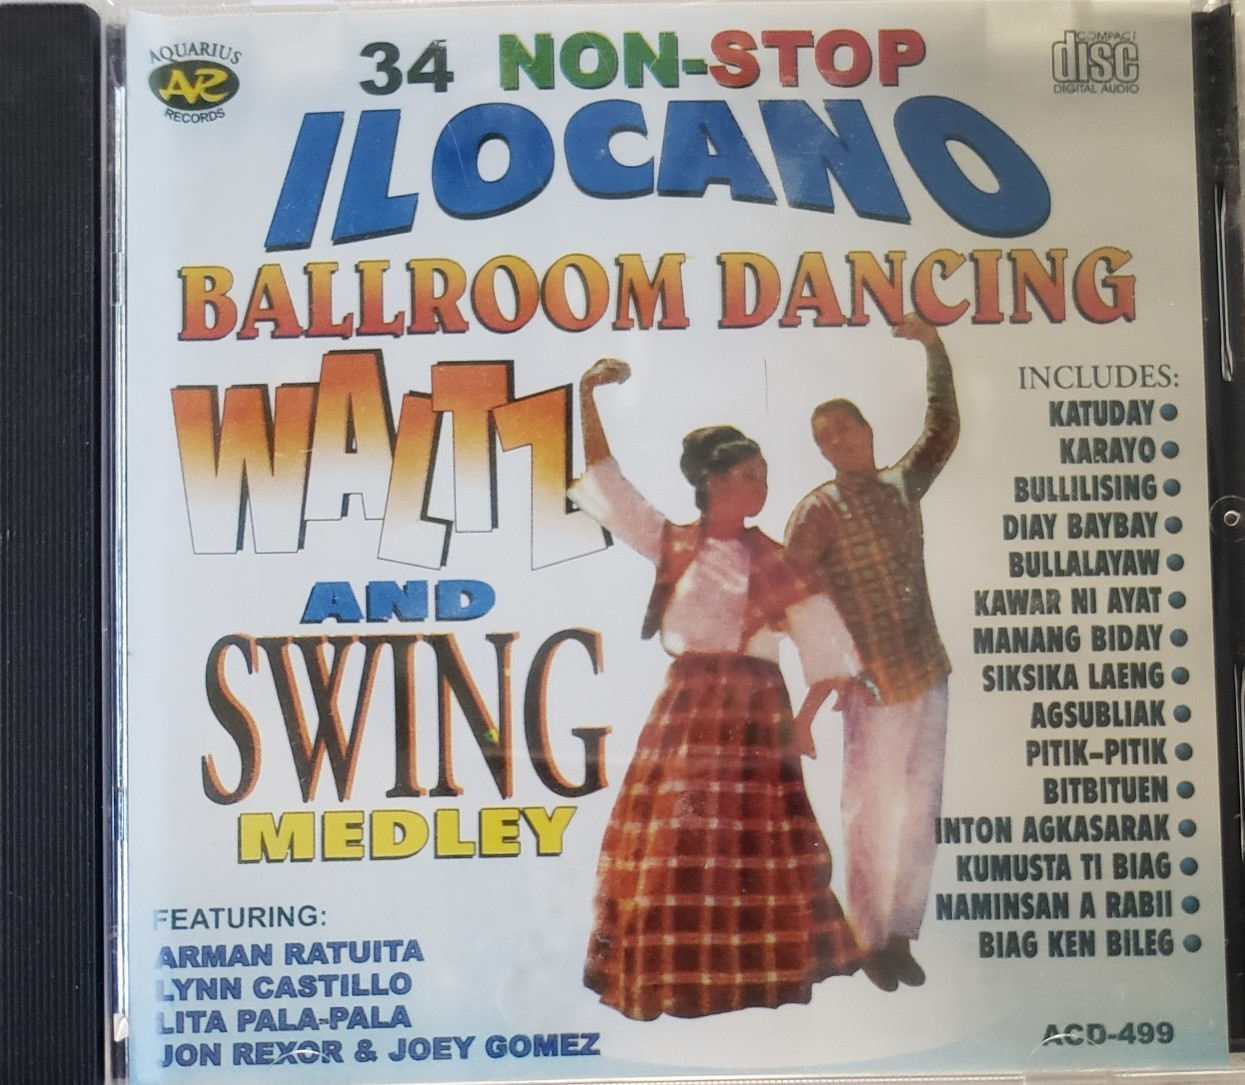 Primary image for 34 Non-Stop ILOCANO Ballroom Dancing Waltz & Swing Medley Philippine Tagalog CD